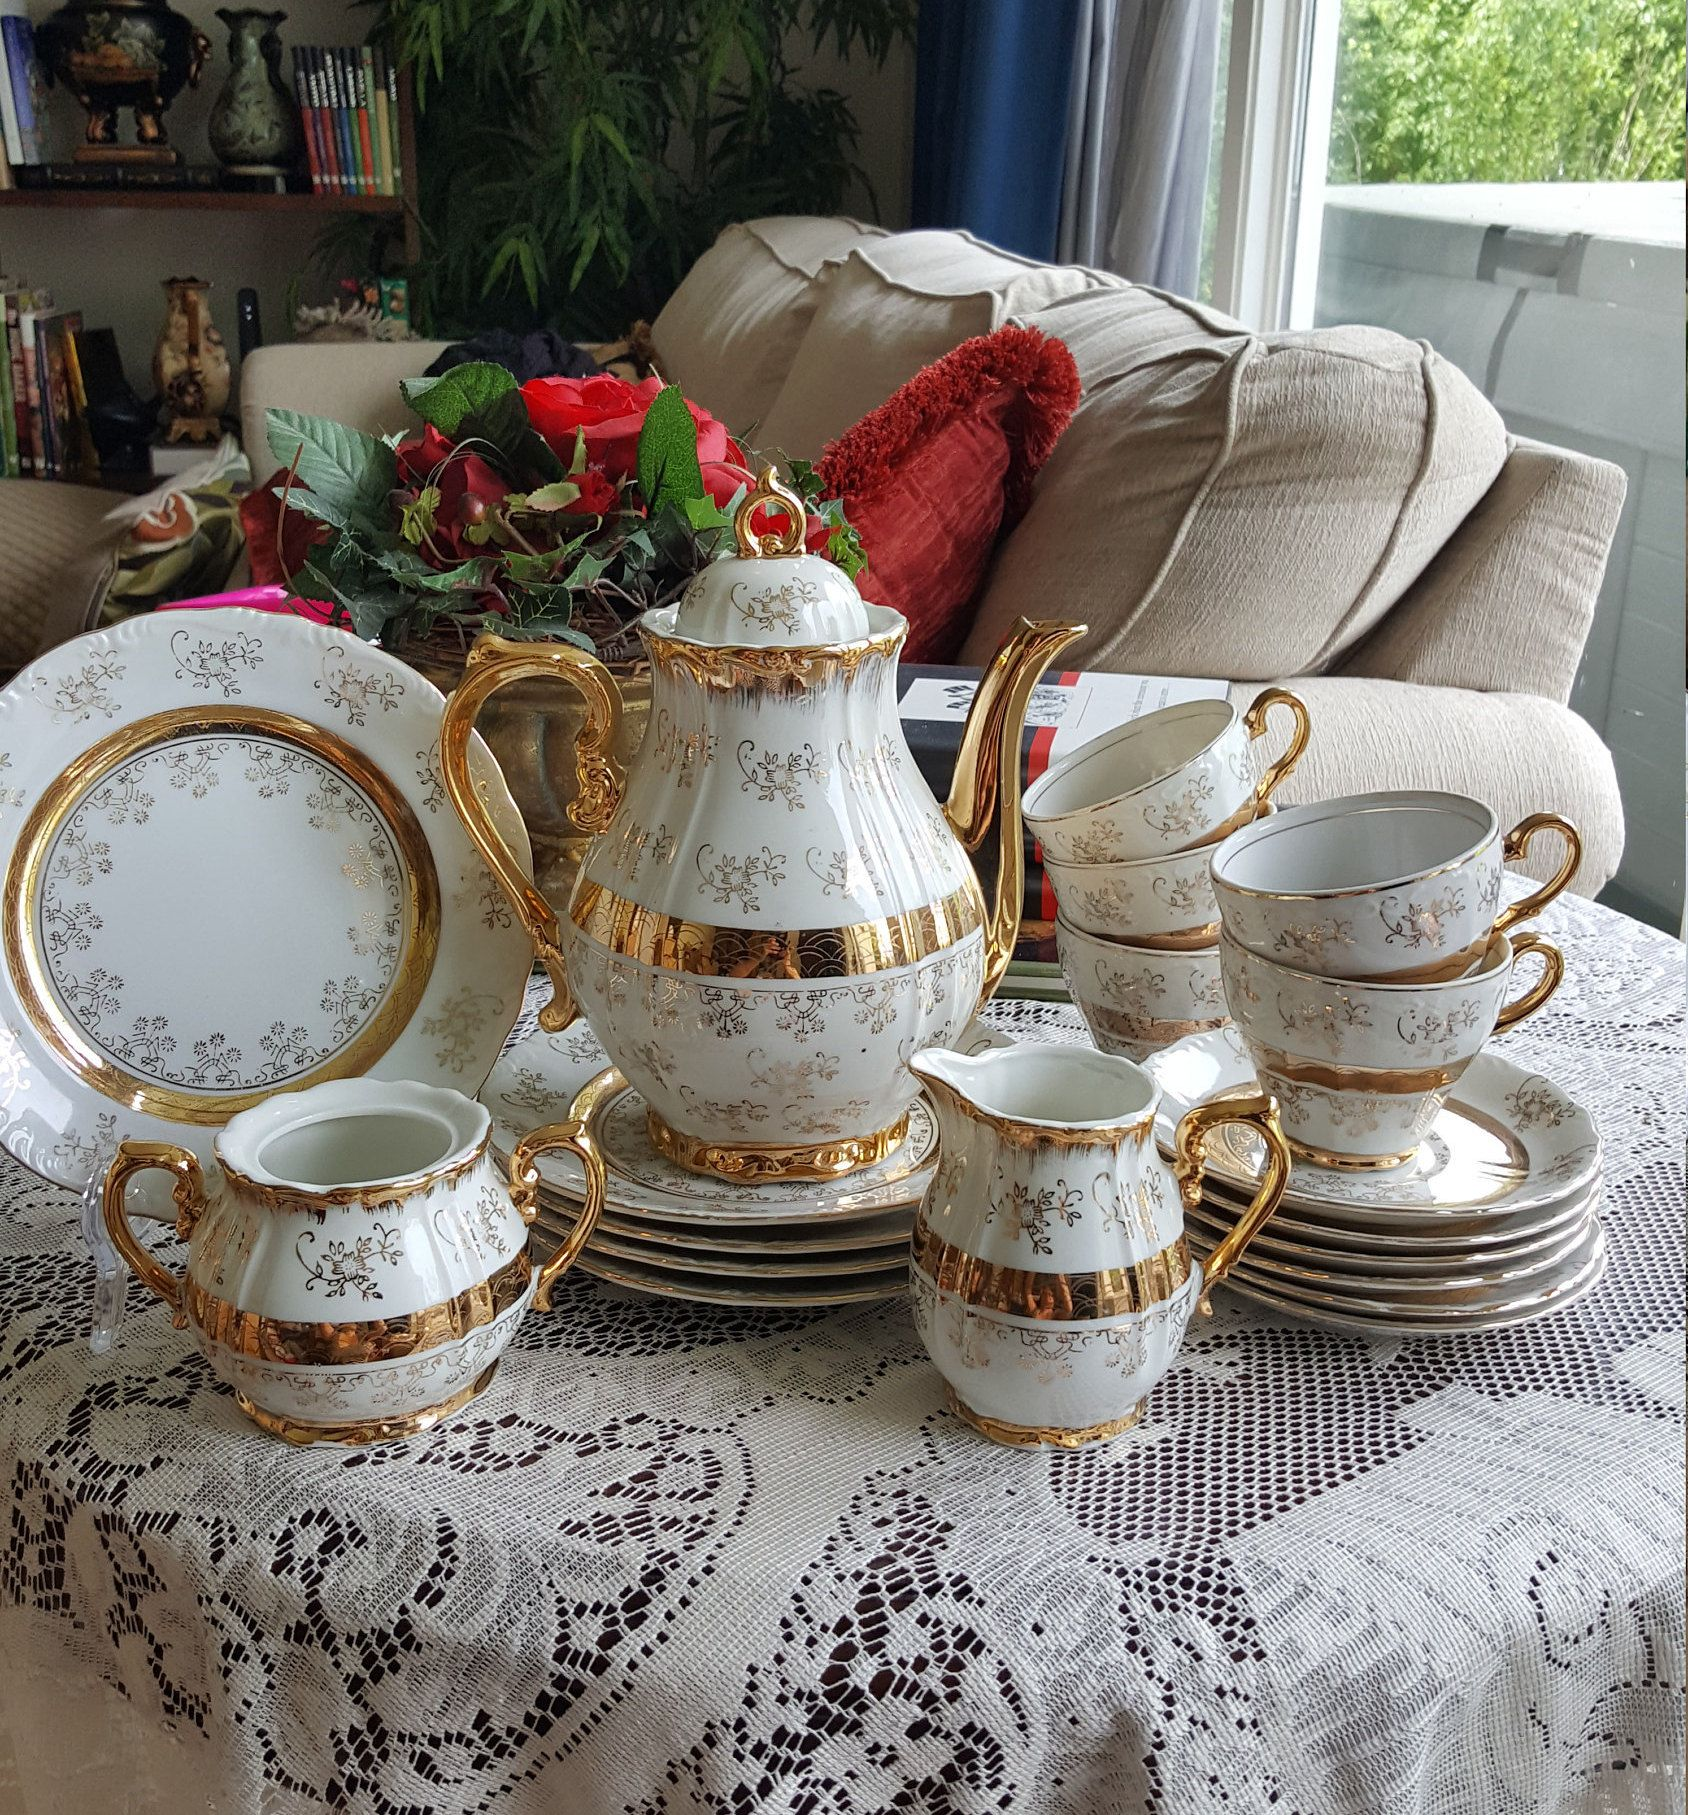 Children Victorian Tea party Demitasse Tea Set of 21 Pieces Serves 6 Lace Work of Gold Vintage China Set Classy Tea Set Children Tea #teasets